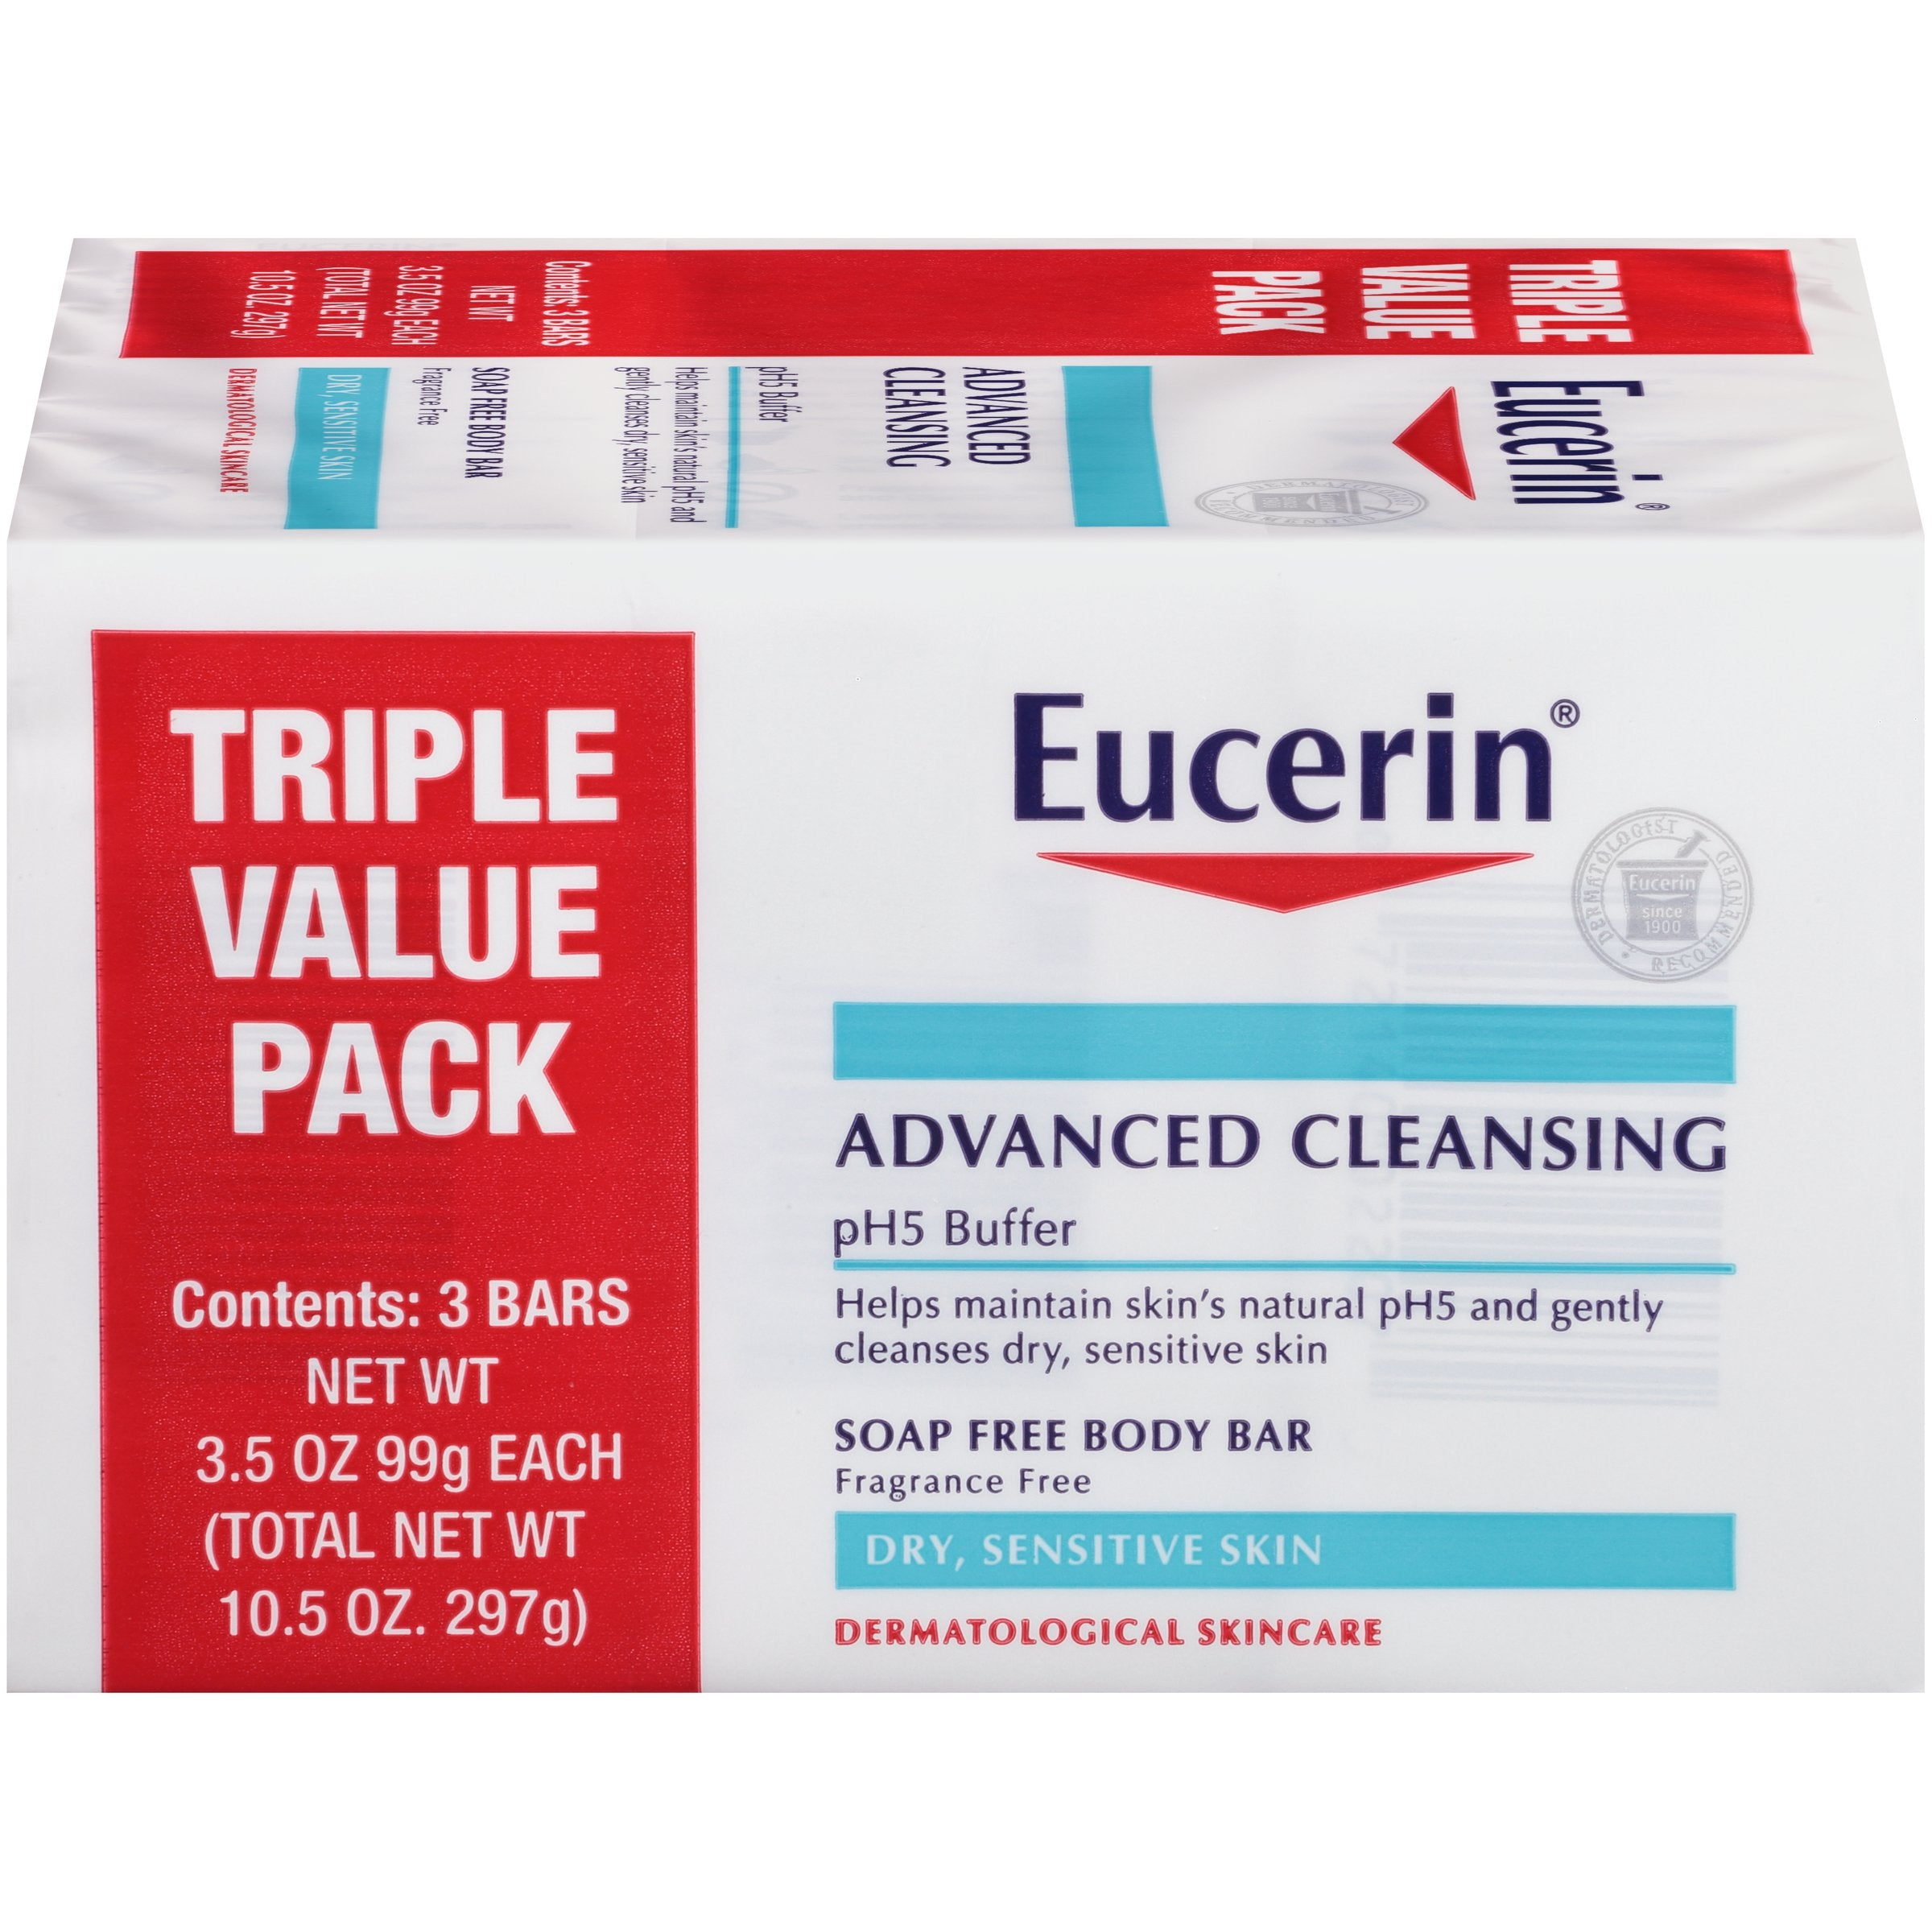 Eucerin Advanced Cleansing Body Bar Soap for Sensitive Skin